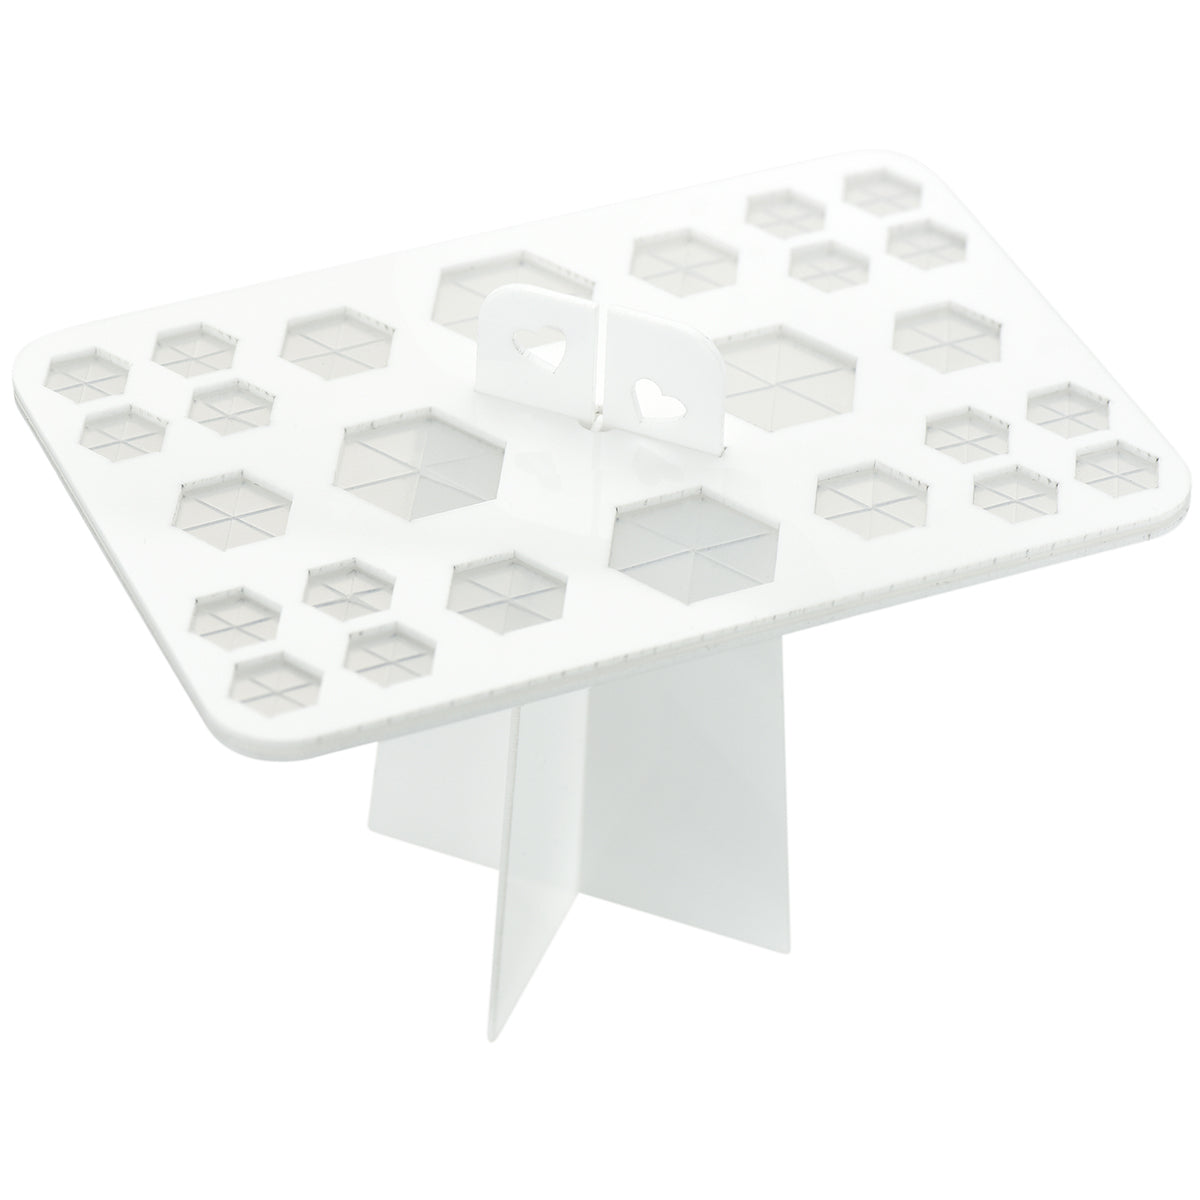 A white acrylic makeup brushes drying rack with 26 silicone holes in hexagon shape.